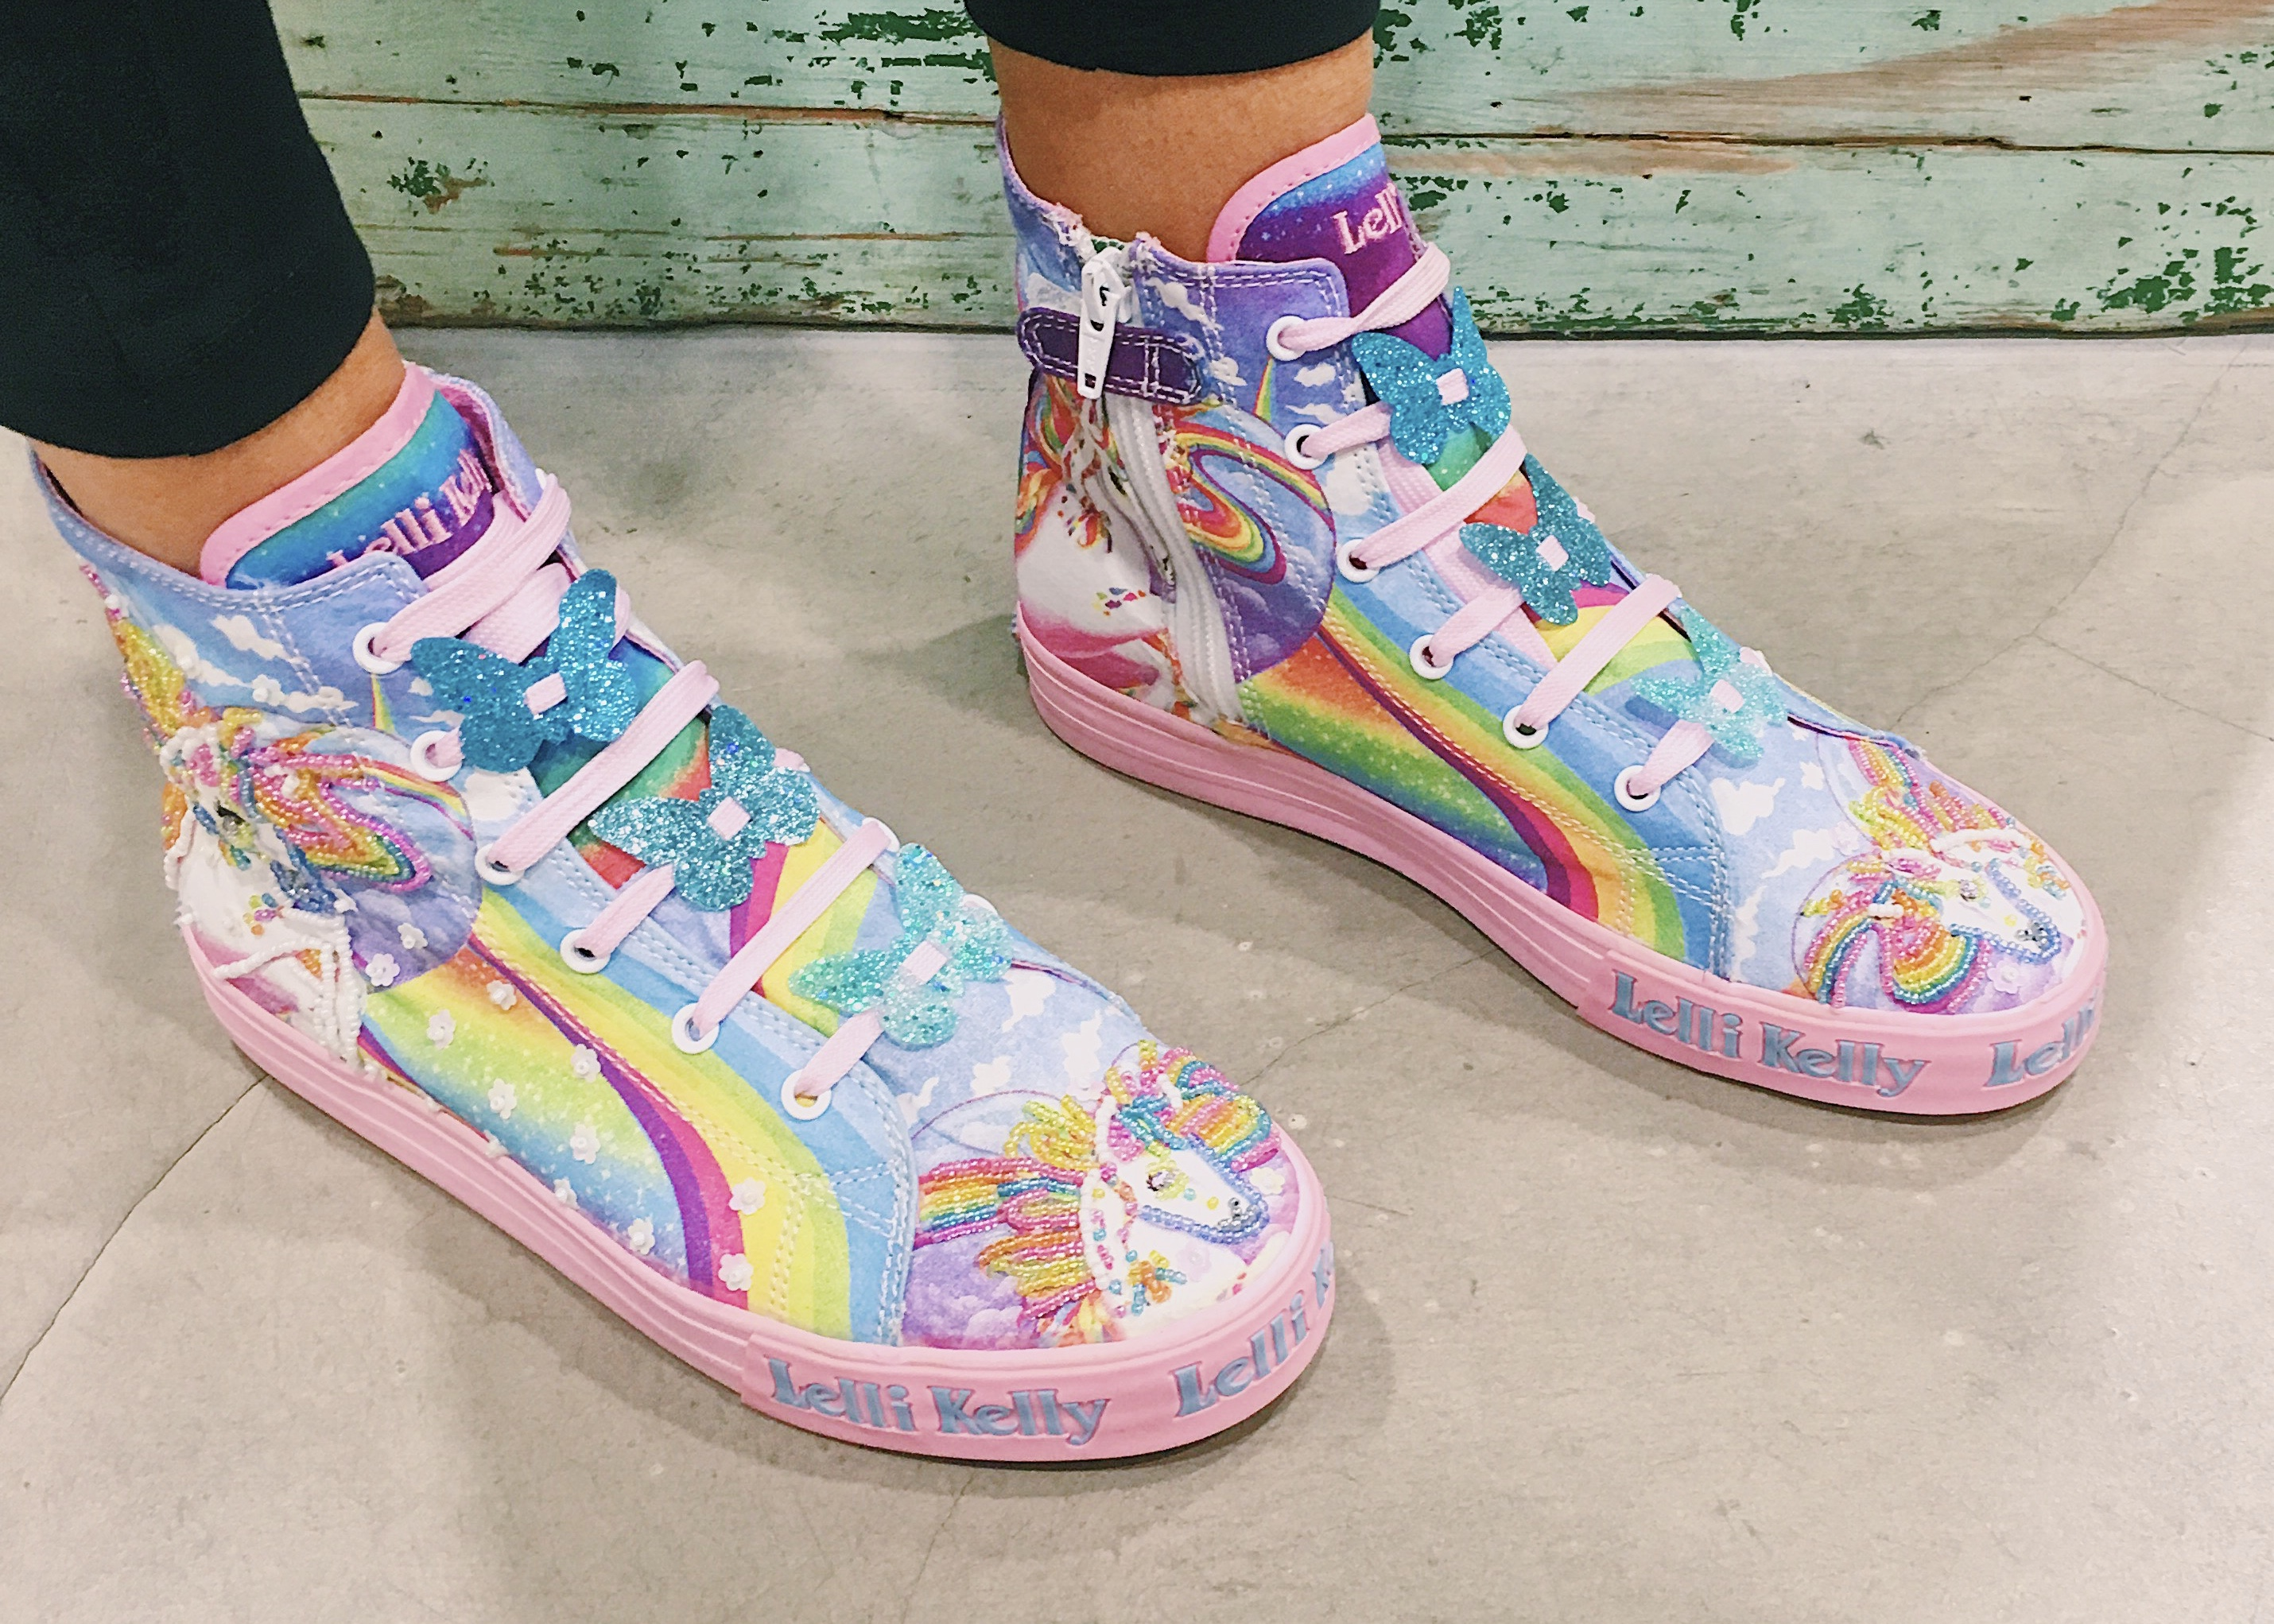 Lelli Kelly Unicorn Shoes Now in at Jake Shoes